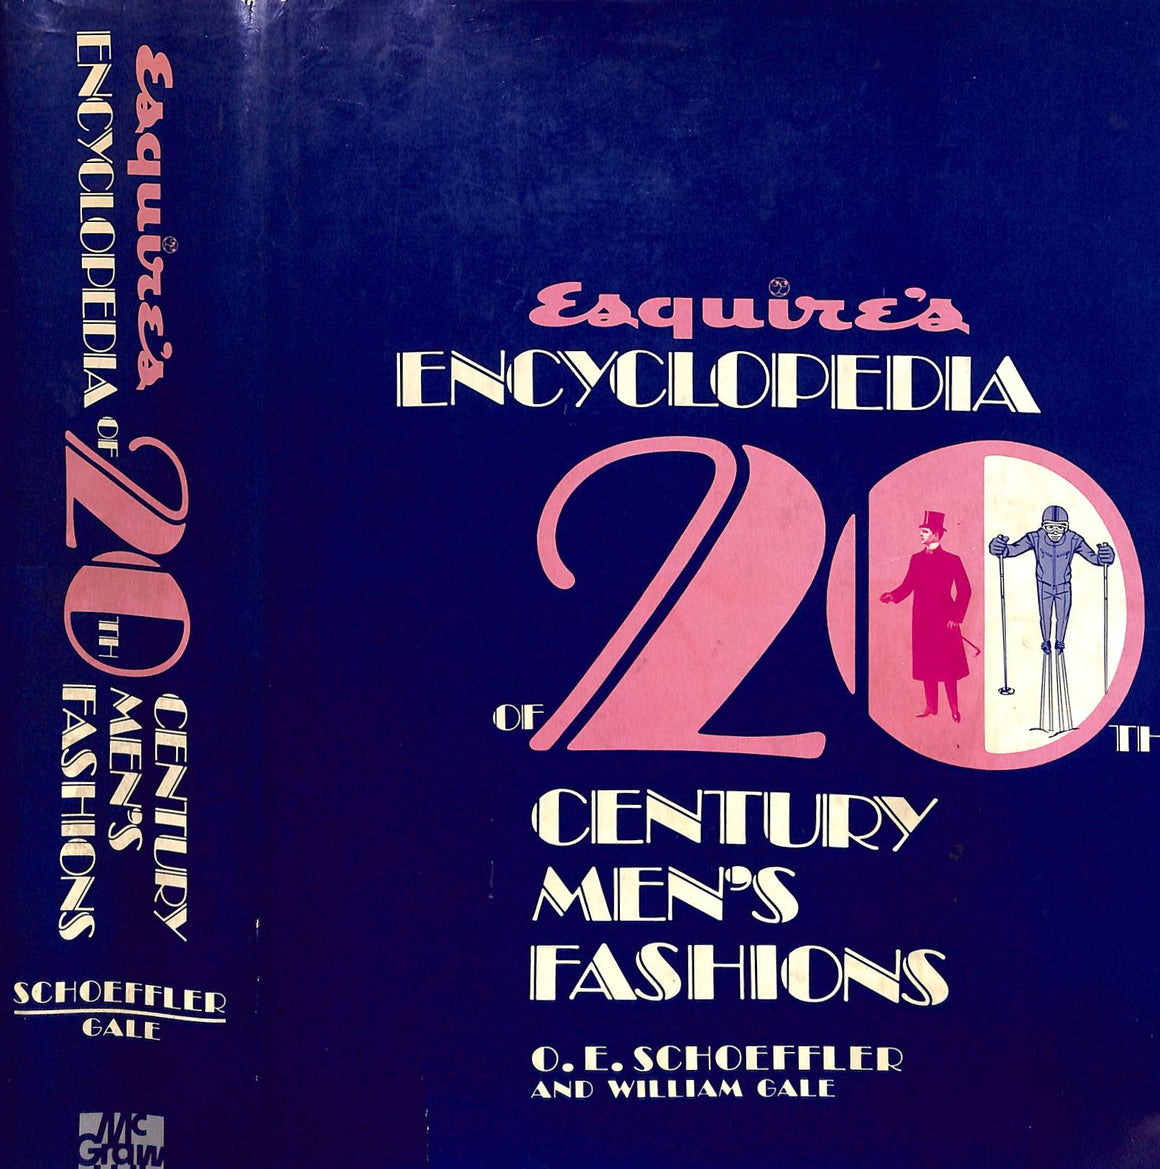 """Esquire's Encyclopedia of 20th Century Men's Fashions"" O. E. Schoeffler and William Gale"